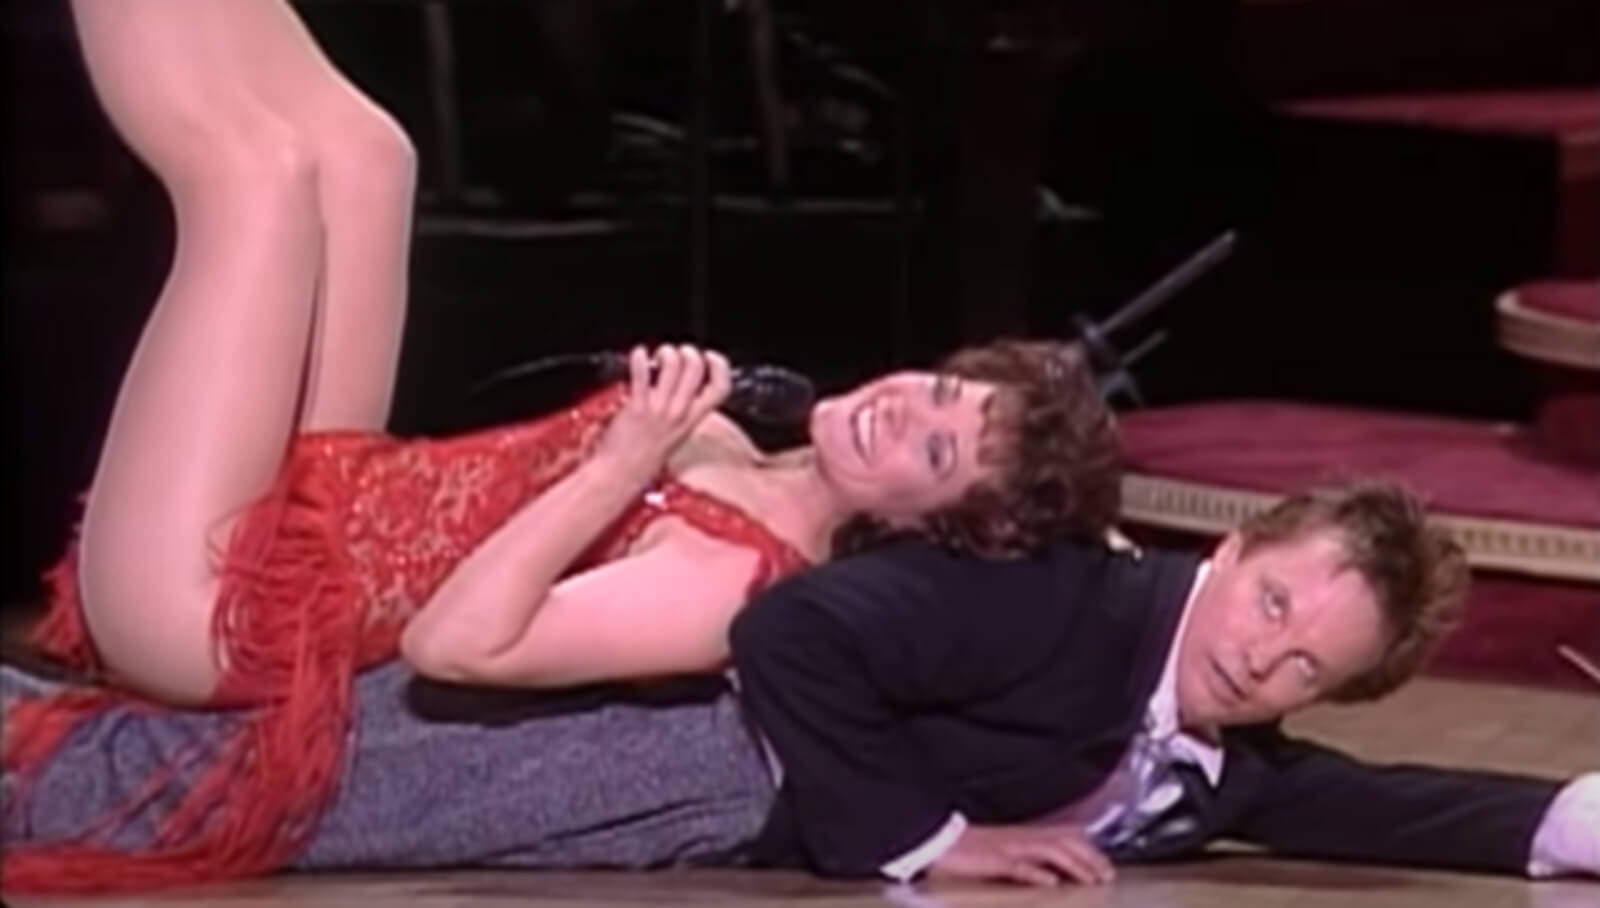 Karen Ziemba in a beautiful red dress sings with her back on Bill Irwin on the floor.